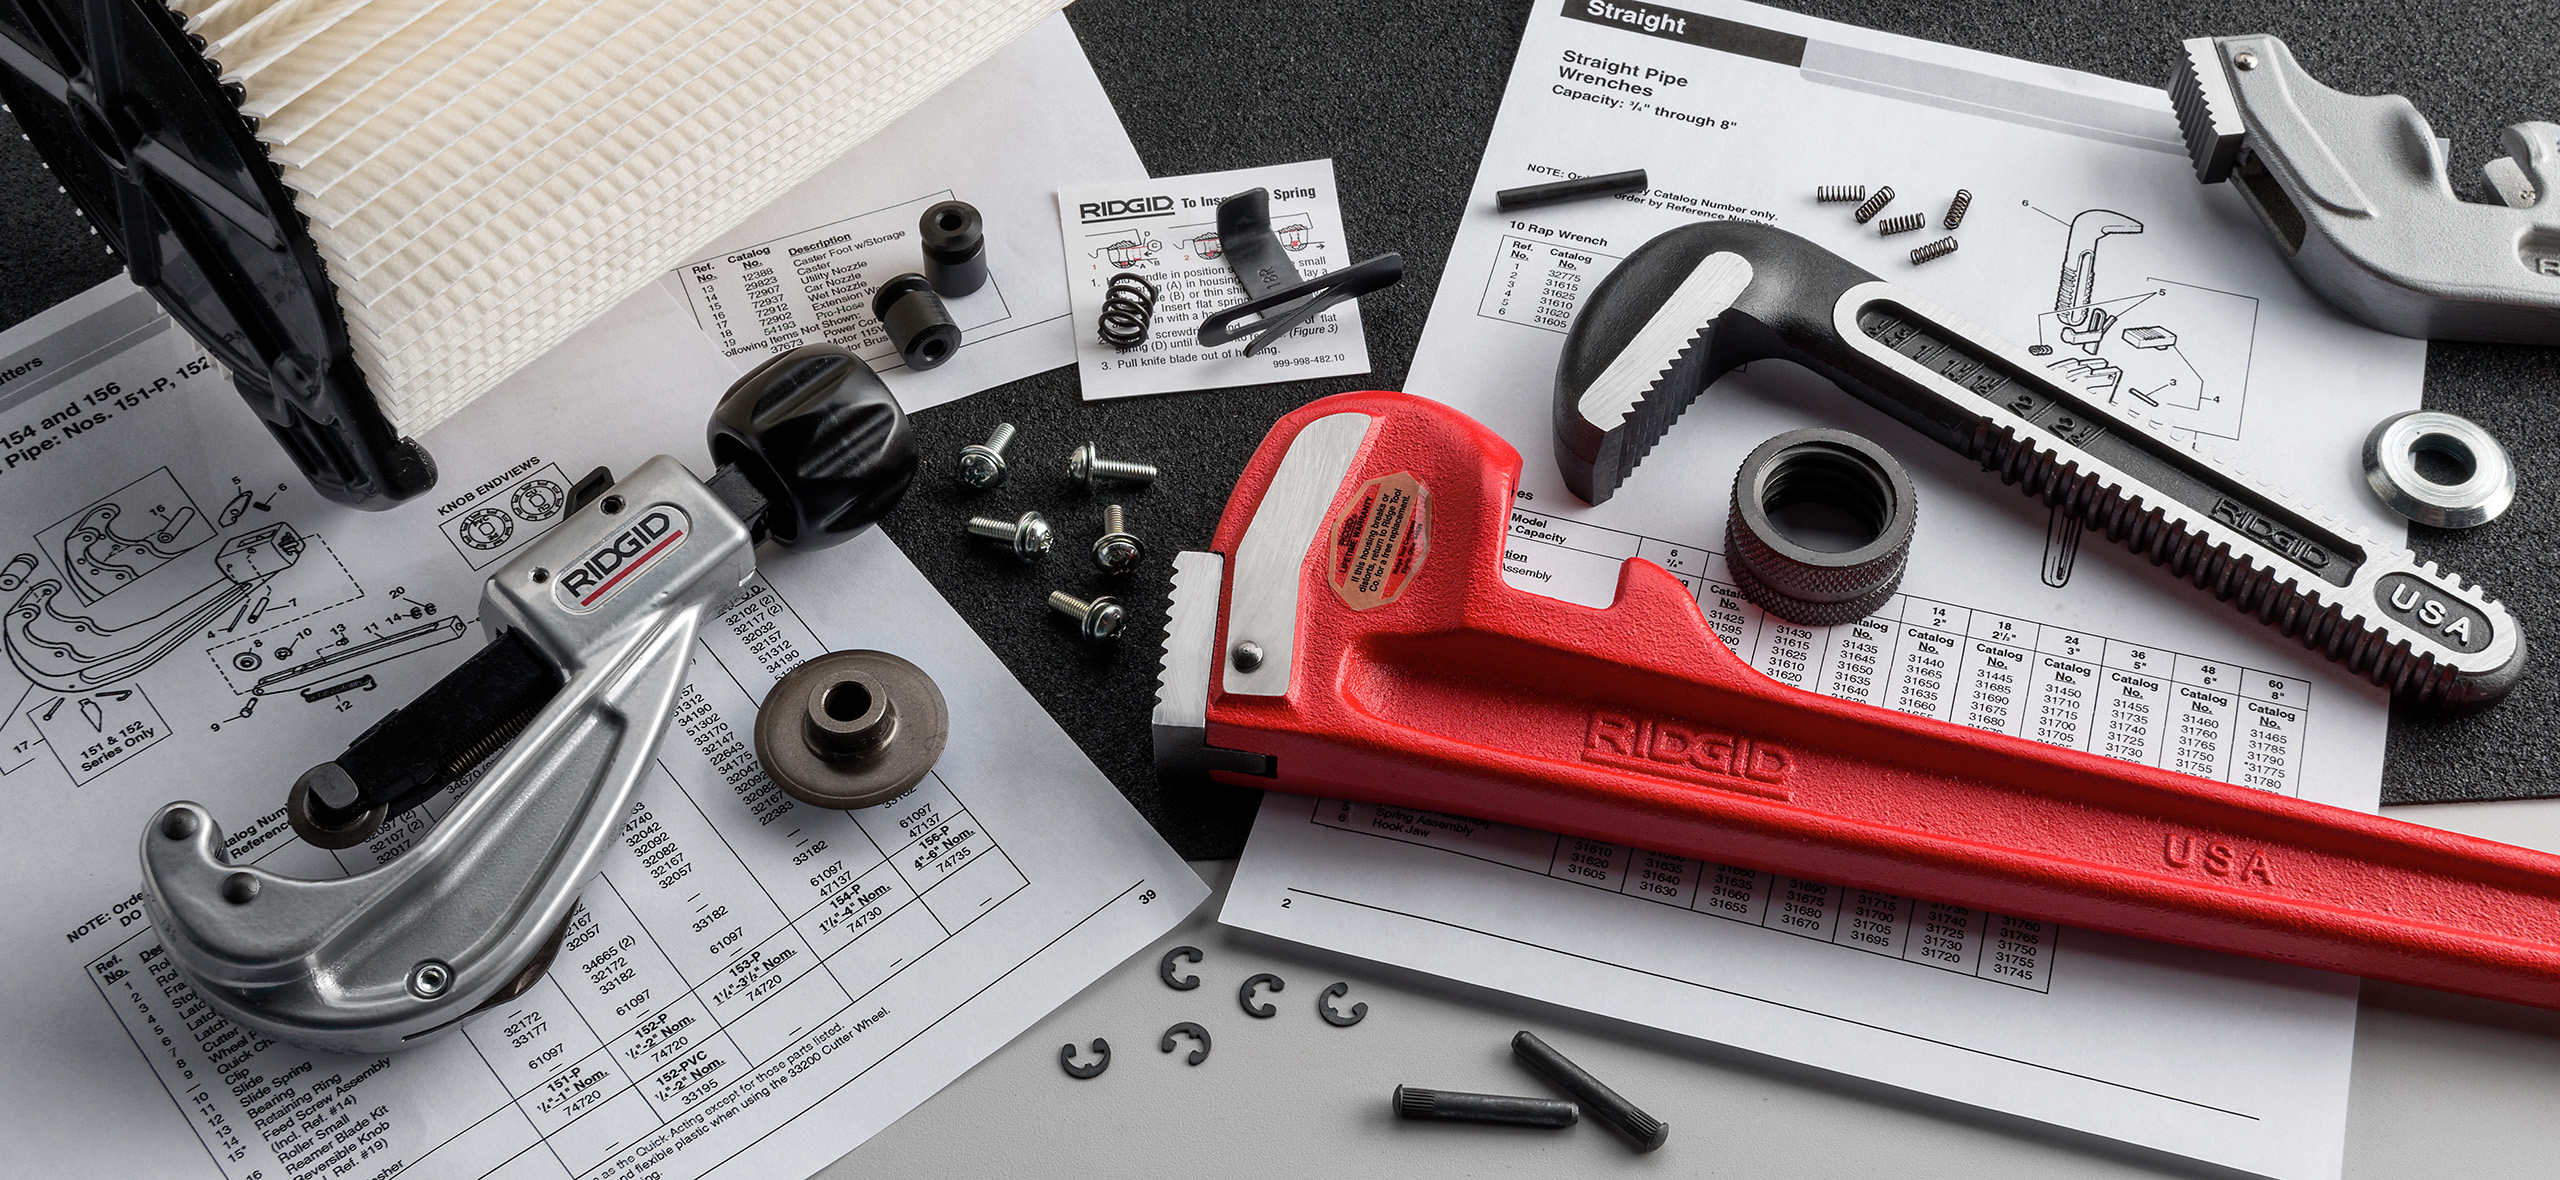 Welcome to the new RIDGID Store